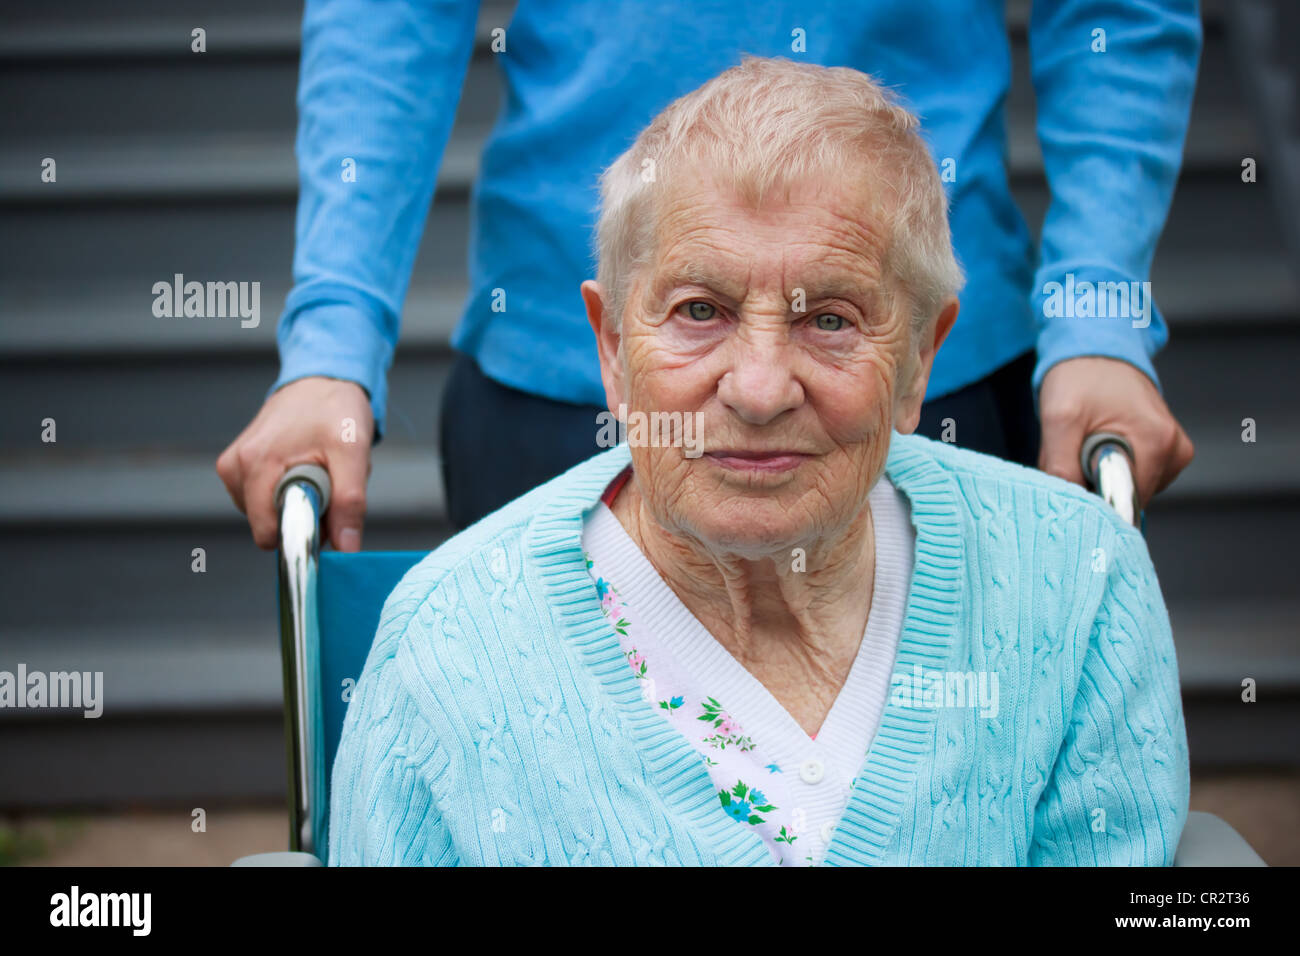 Senior Woman in Wheelchair with Assistant Behind her. - Stock Image